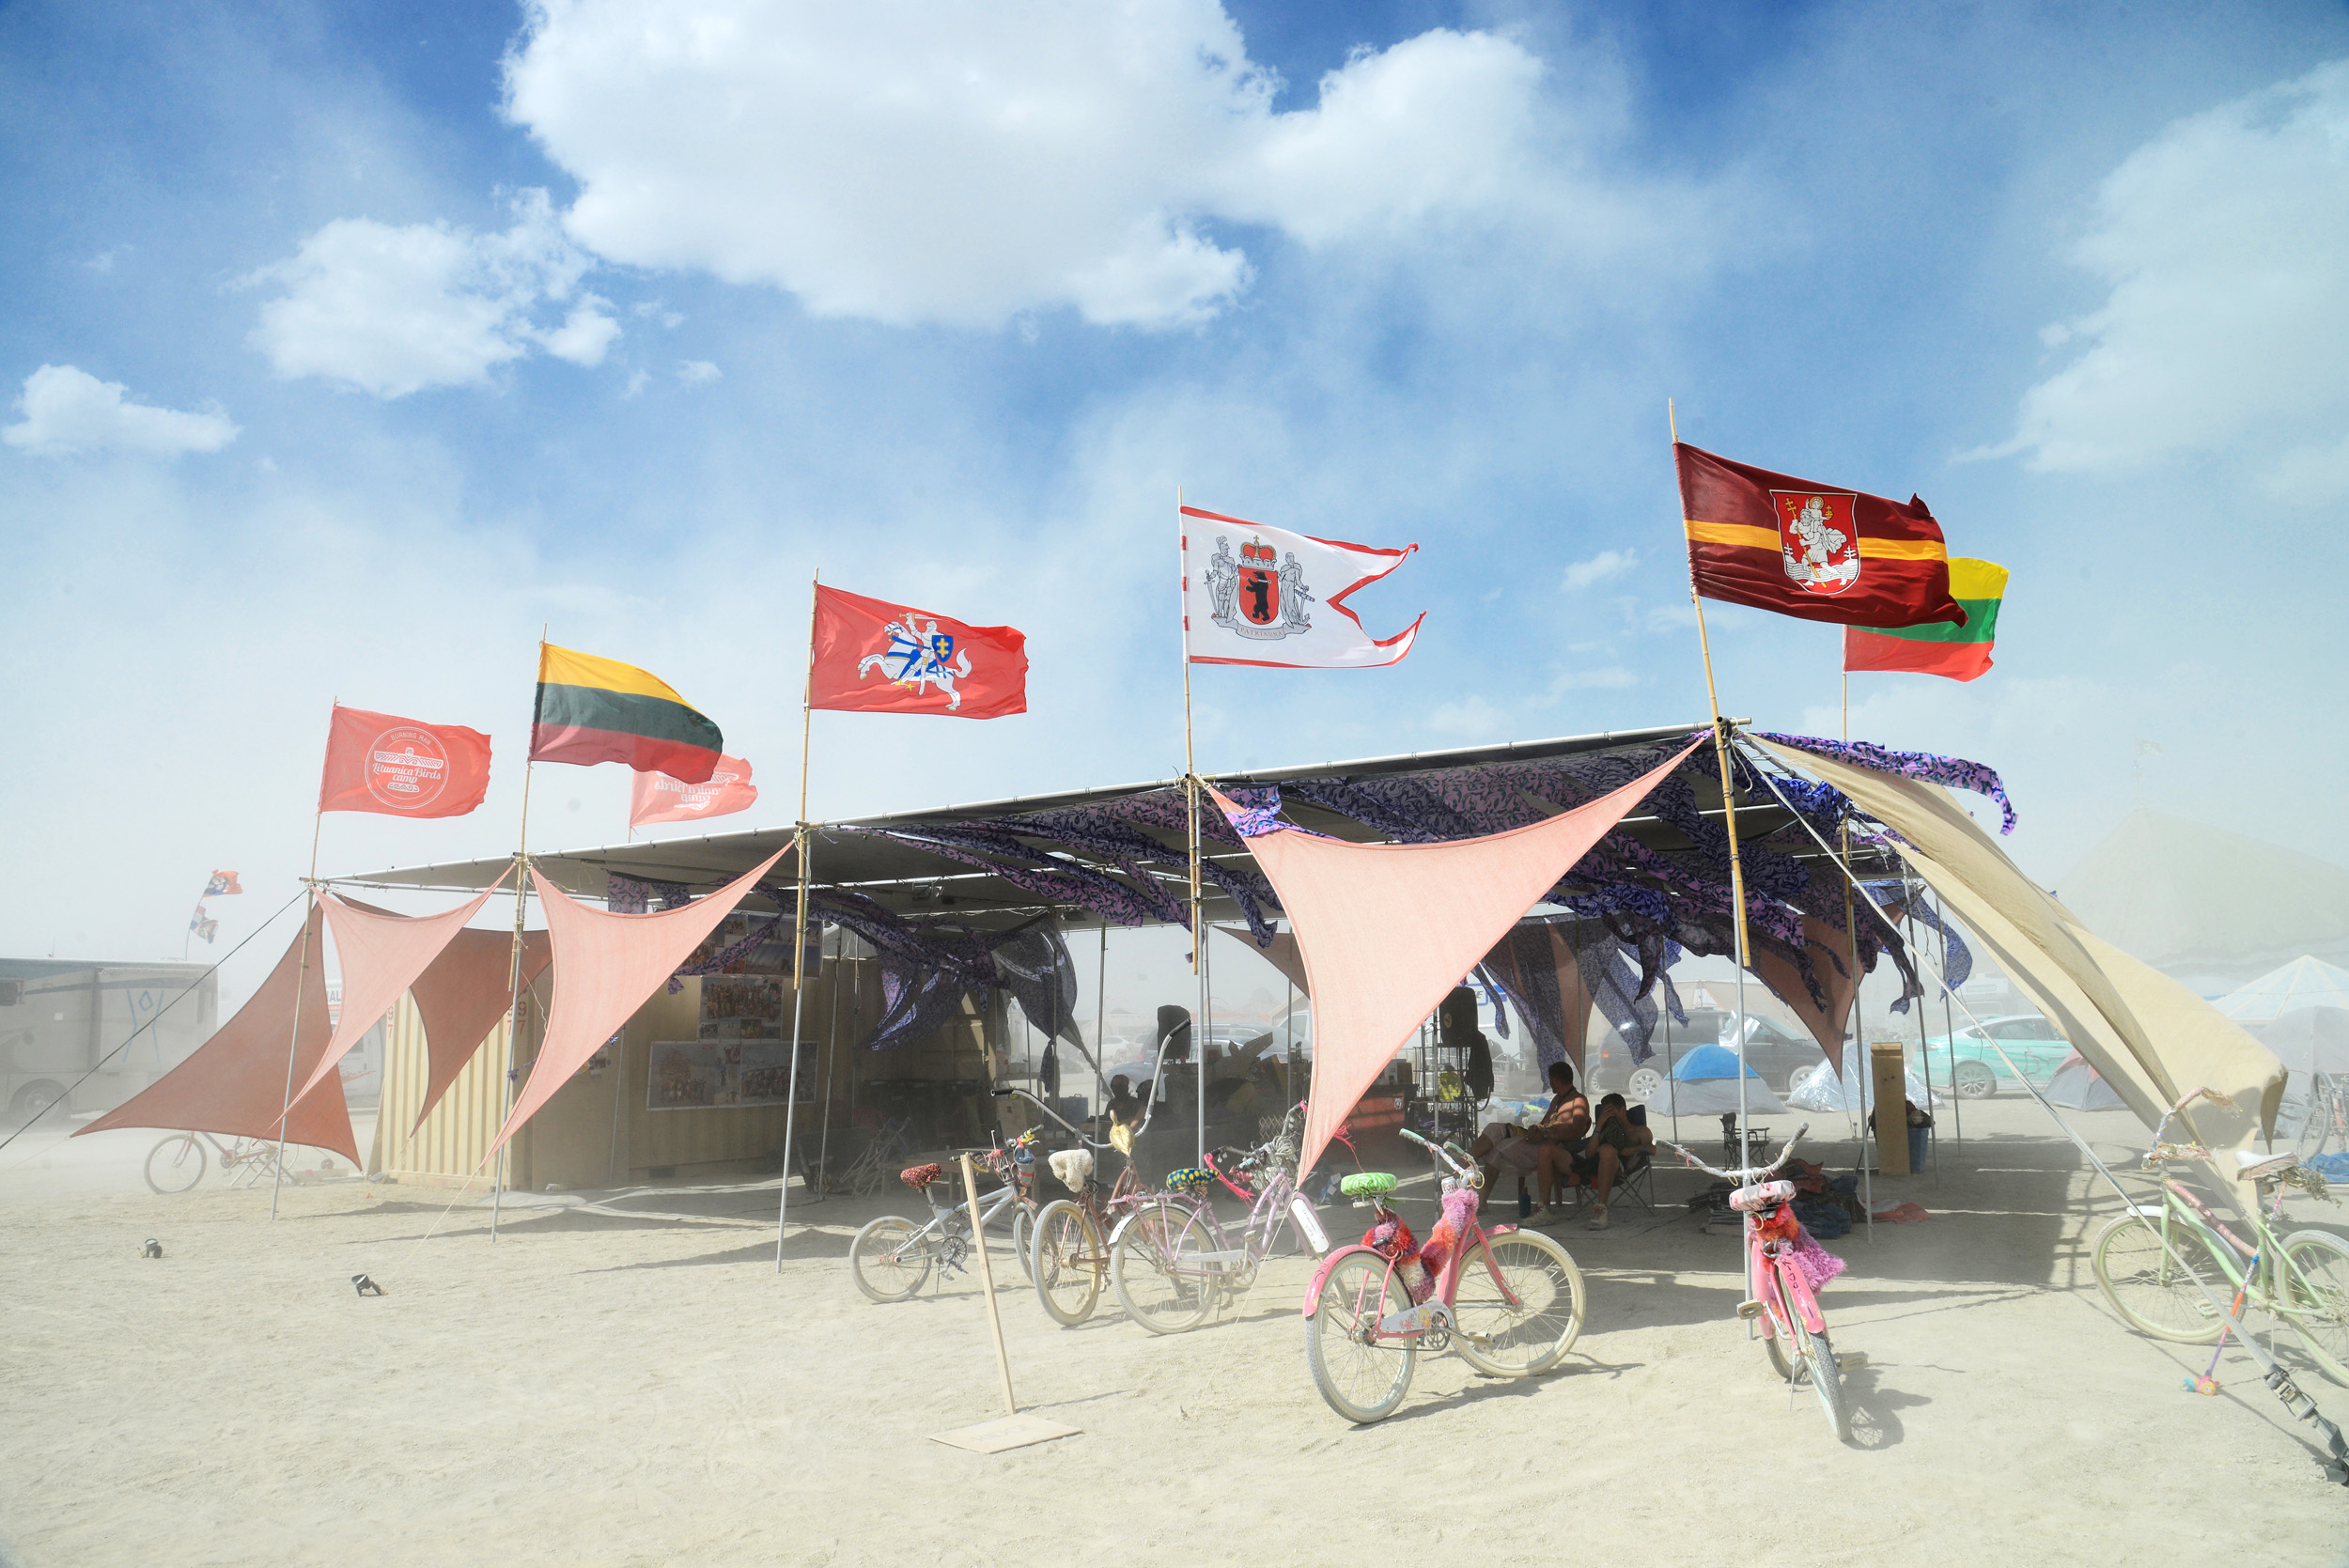 Lituanica Birds Camp. Burning Man 2017